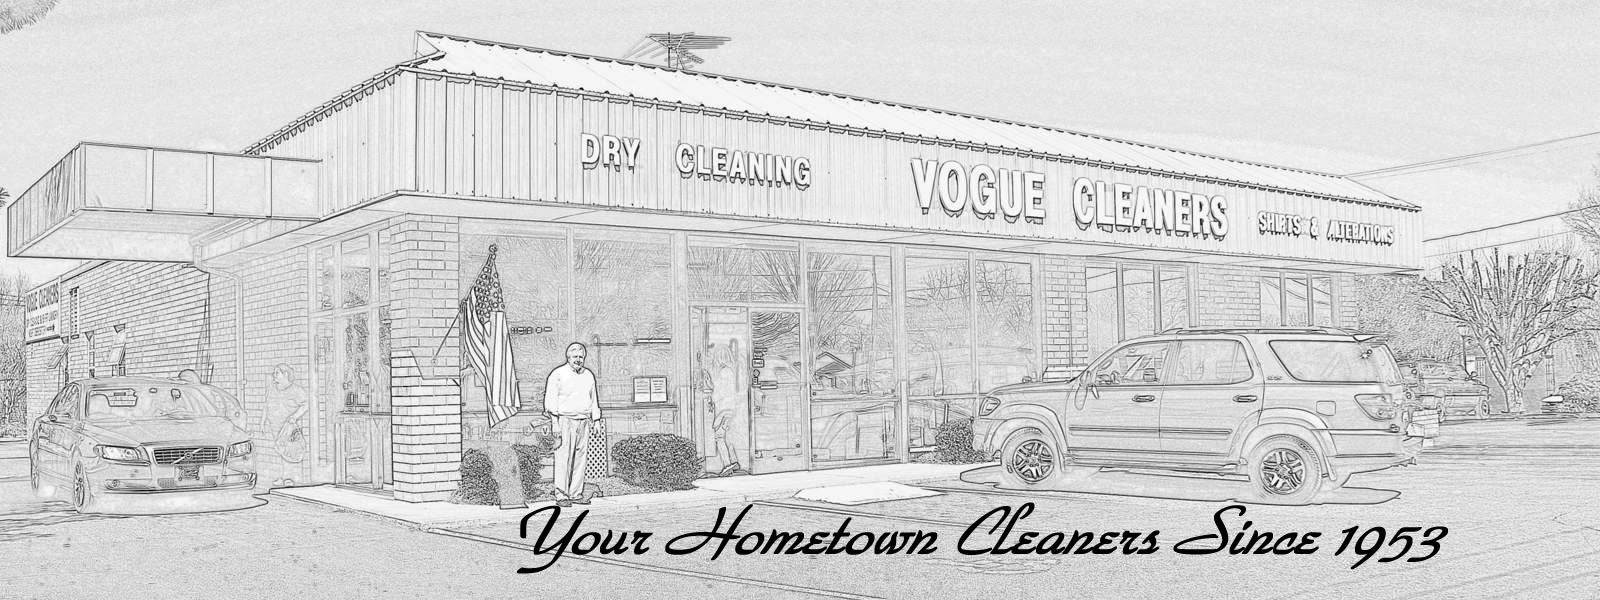 Vogue Dry Cleaners of Salisbury